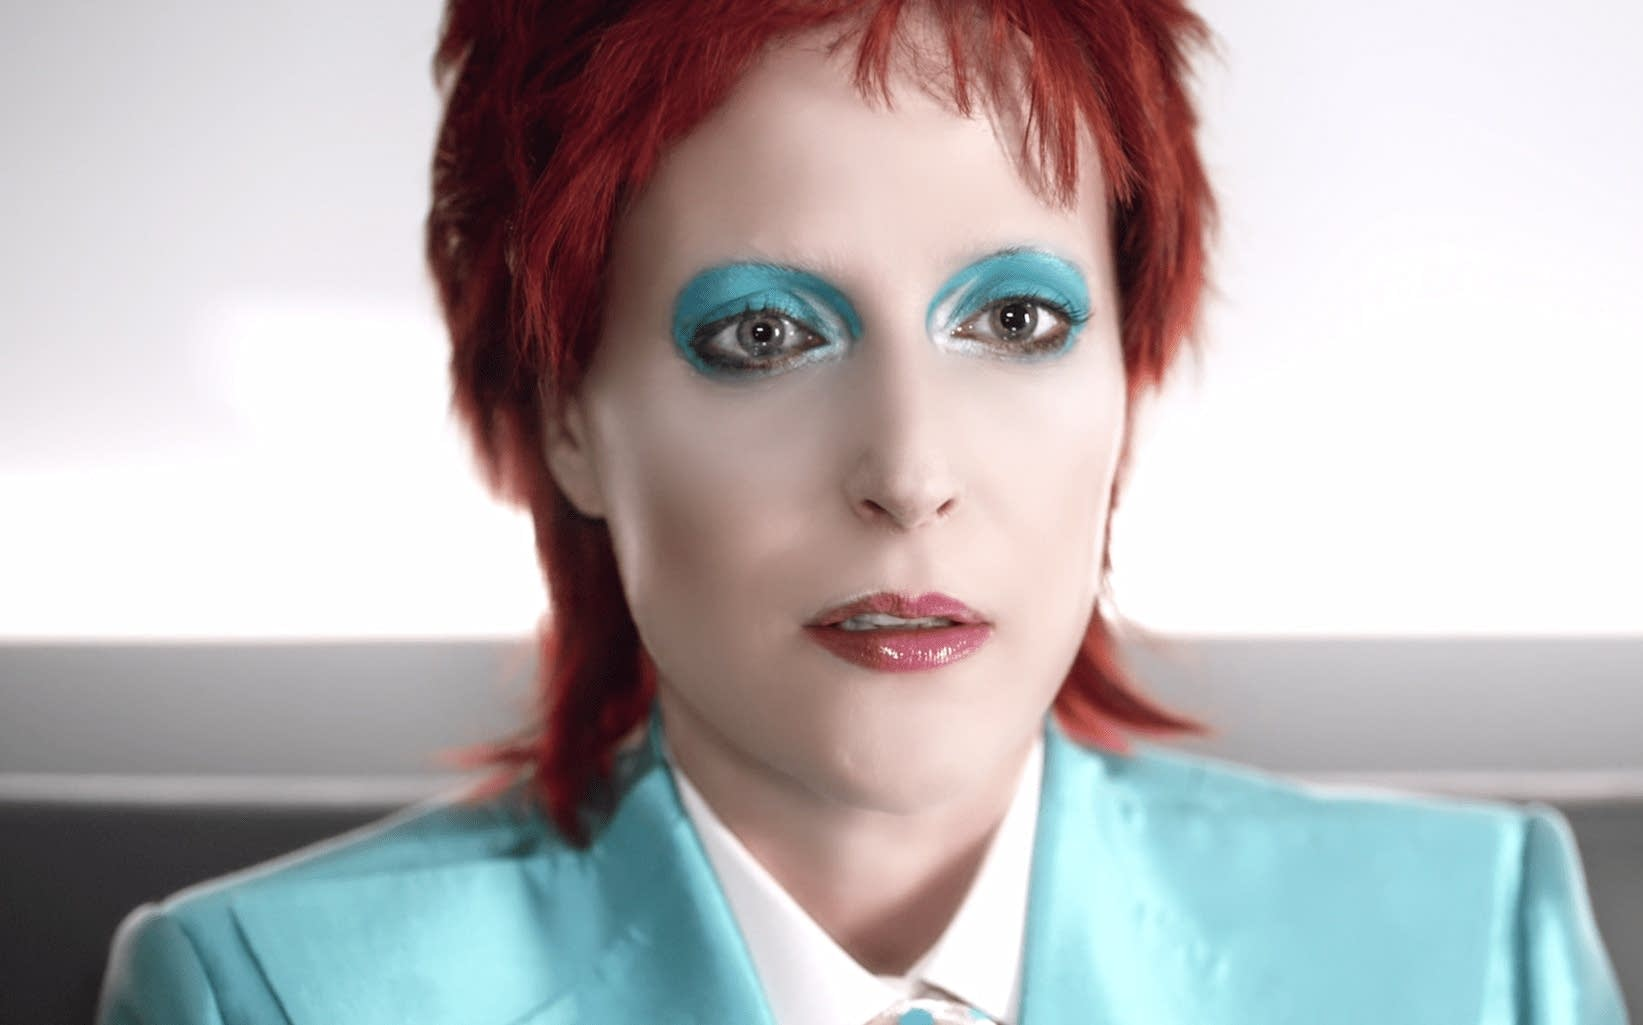 Gillian Anderson as David Bowie in 'American Gods'